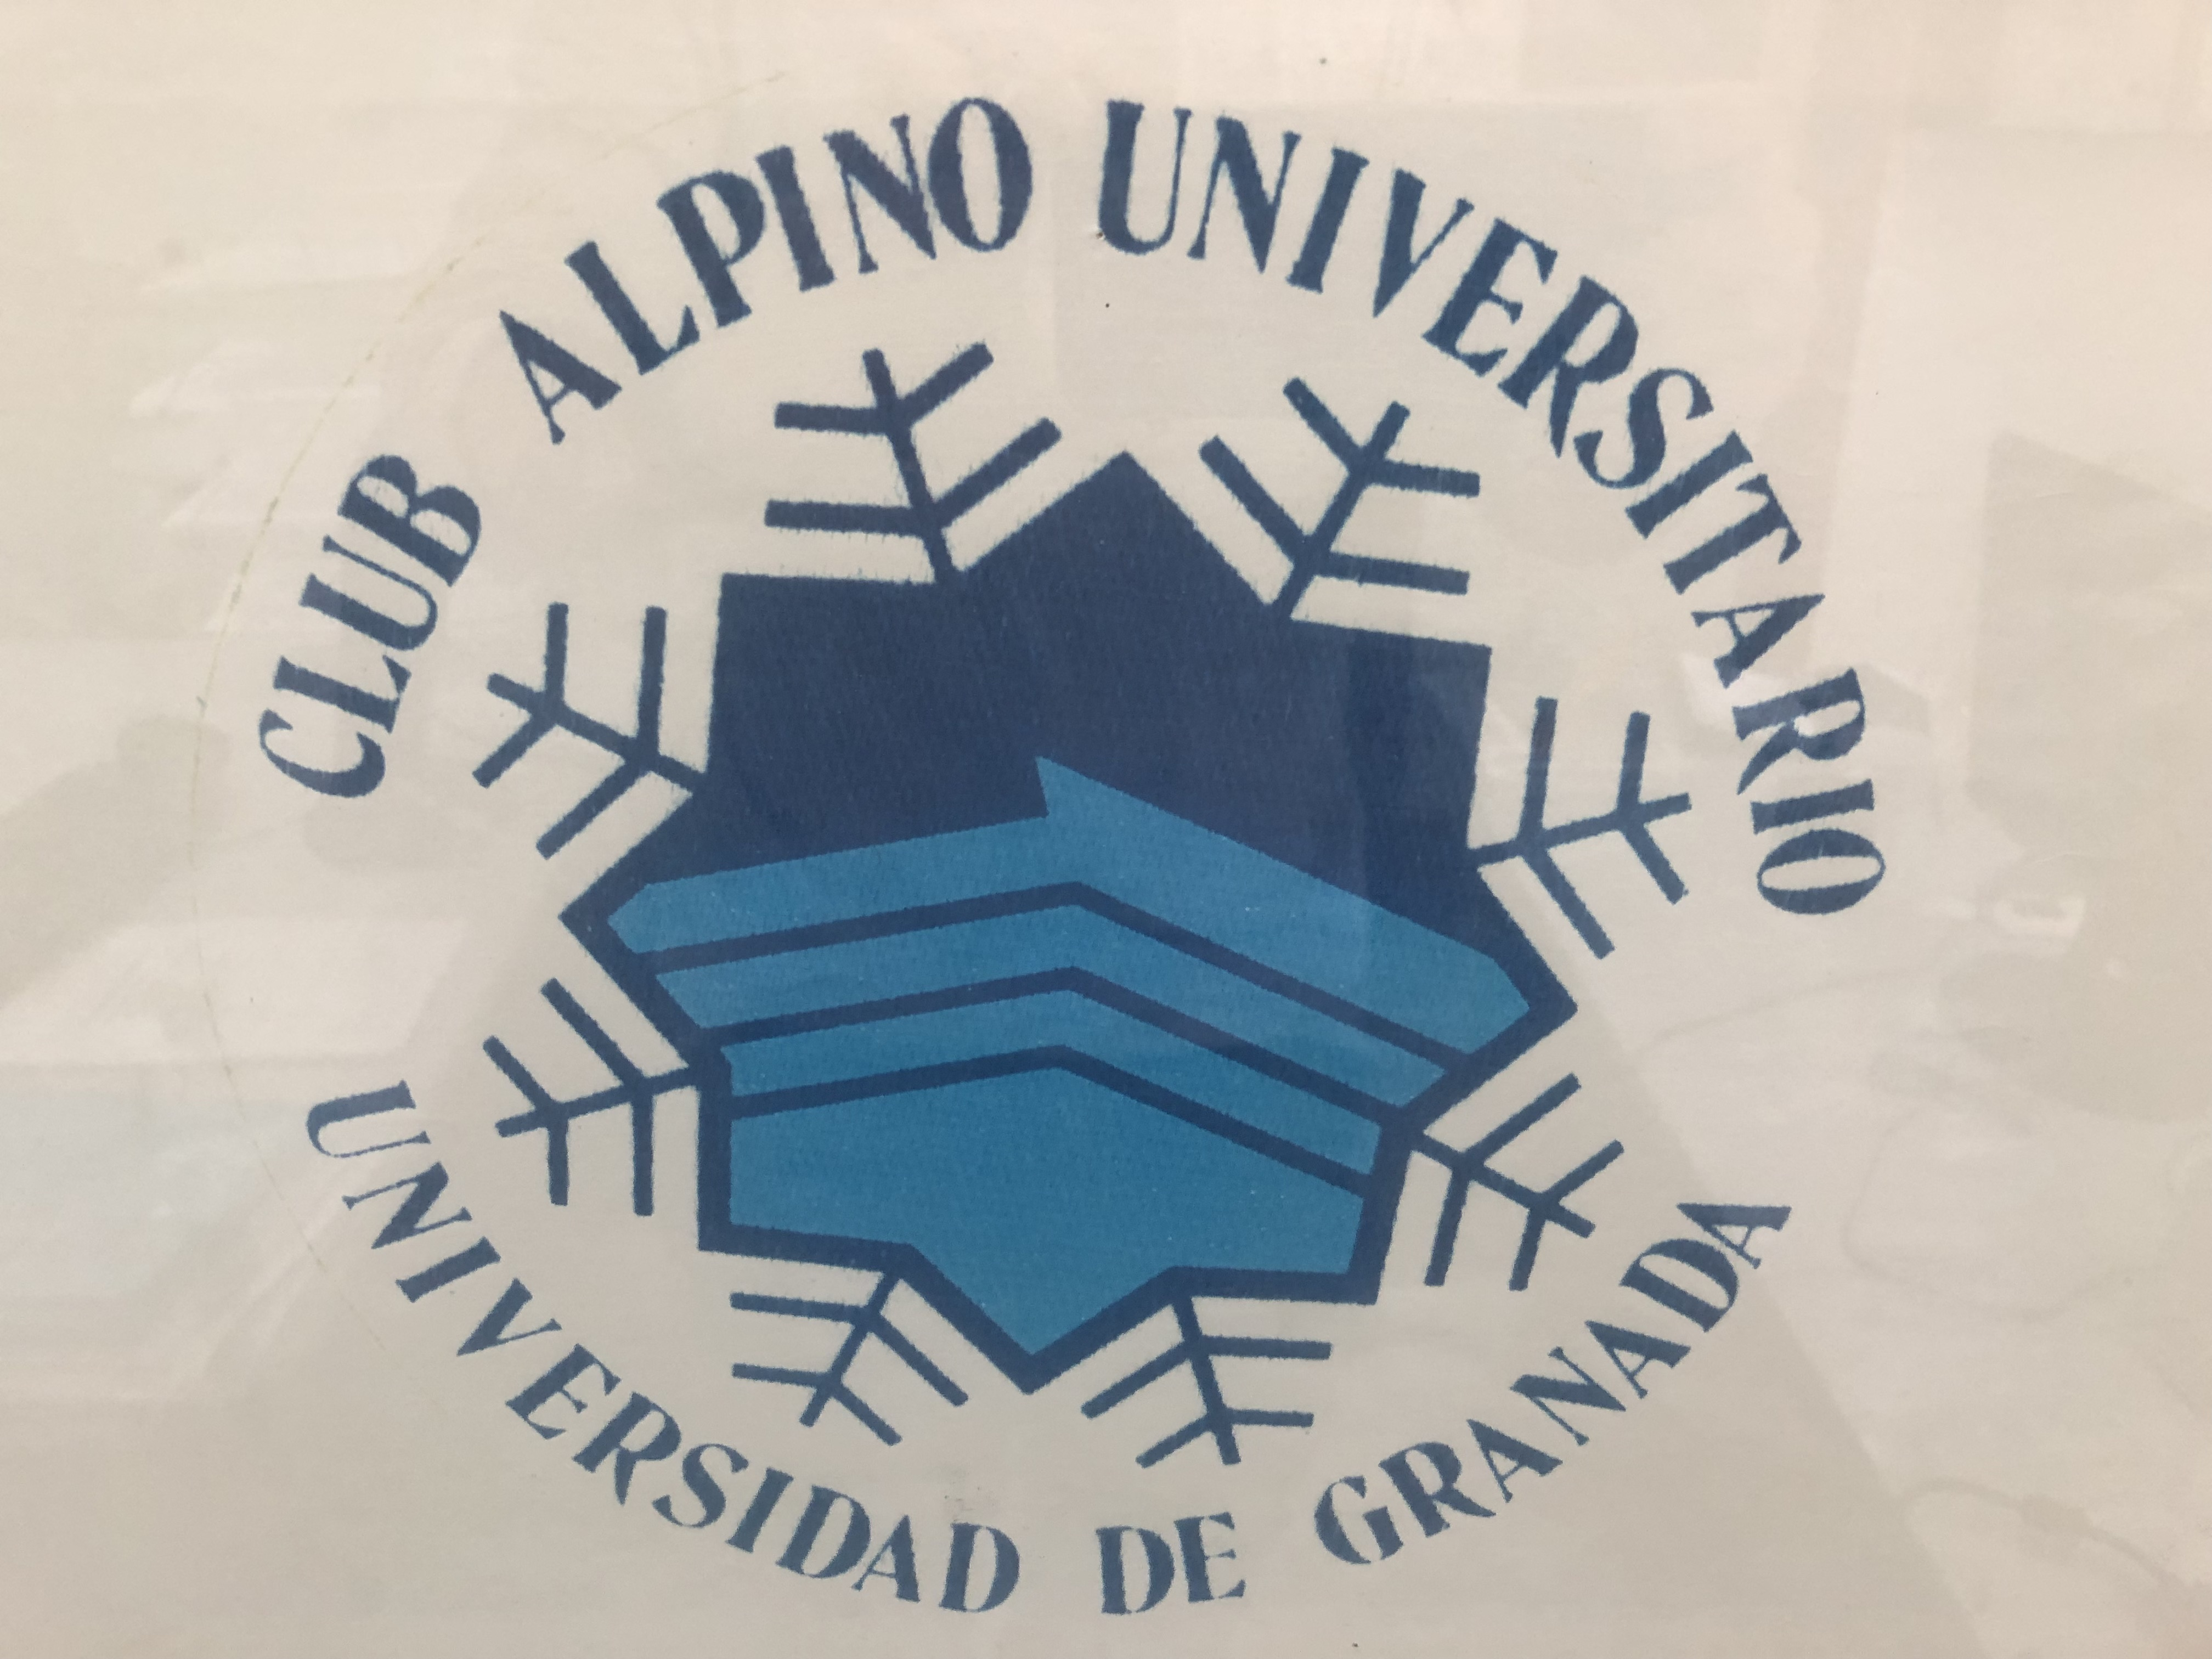 Club Alpino Universitario